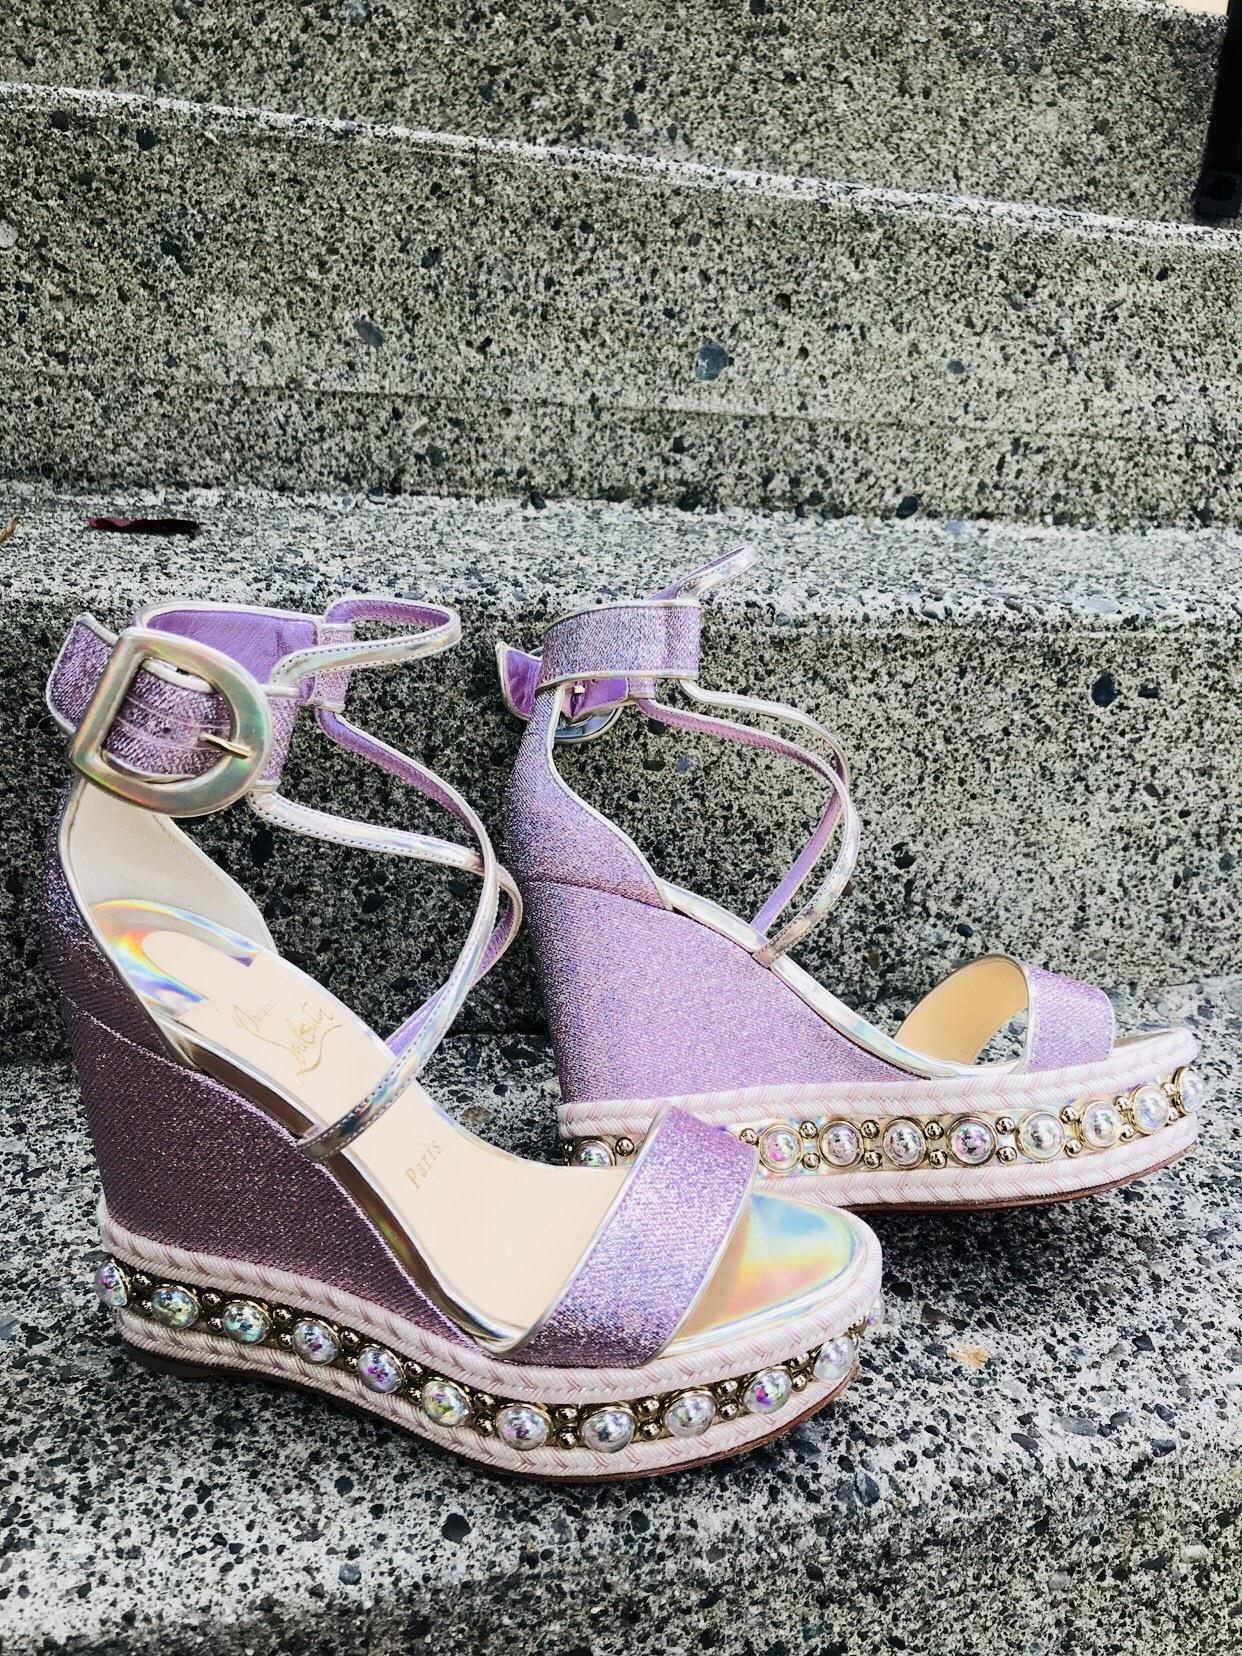 526c8b9a20f5 US 7 Christian Louboutin Lupin Chocazeppa 120 Wedges Wedges Wedges Size EU  37 (Approx.